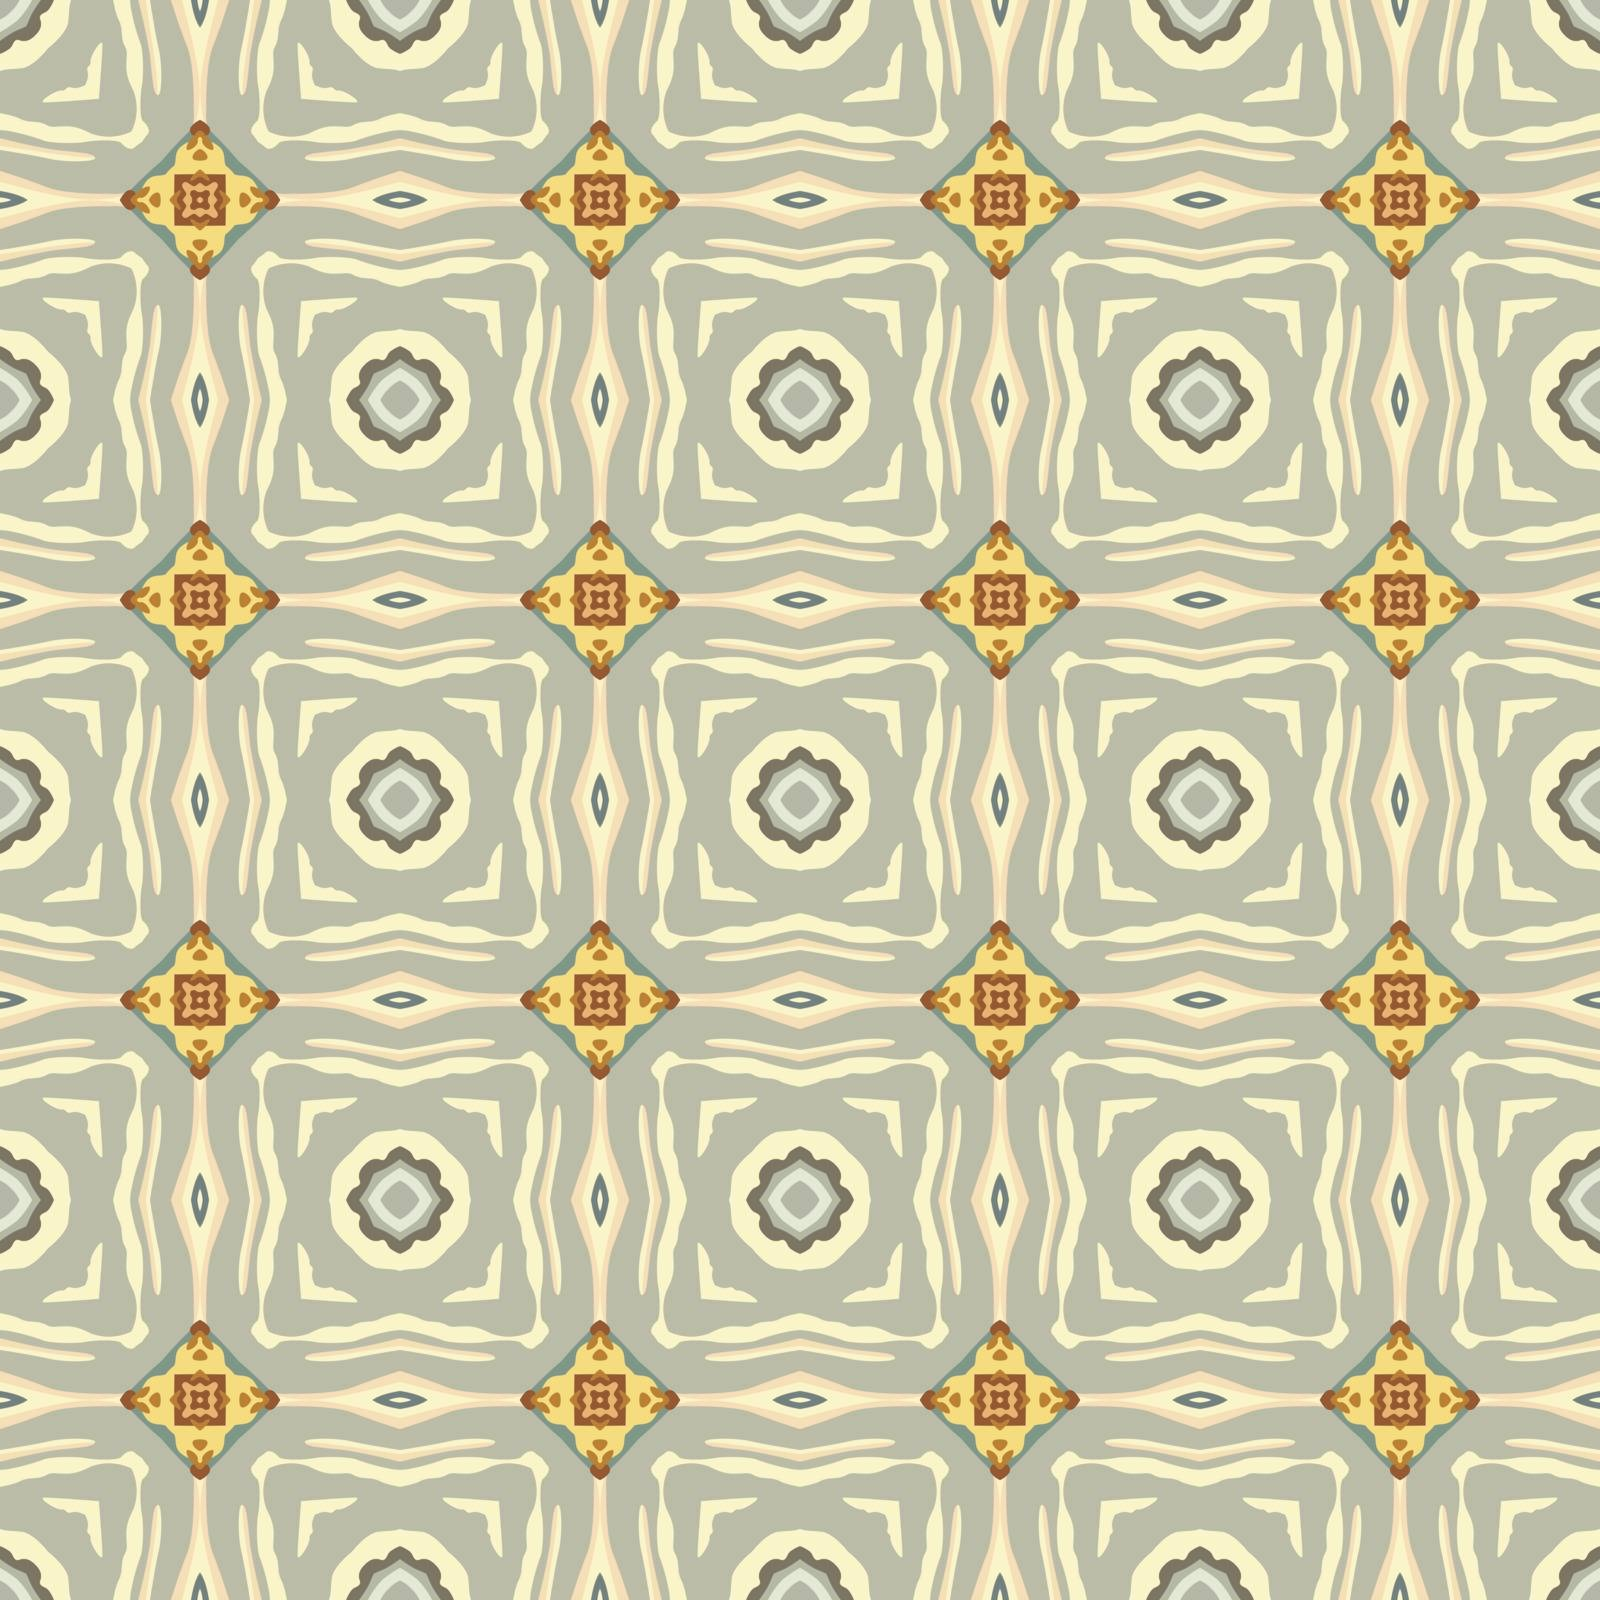 Seamless illustrated pattern made of abstract elements in beige, gray, turquoise, yellow and brown